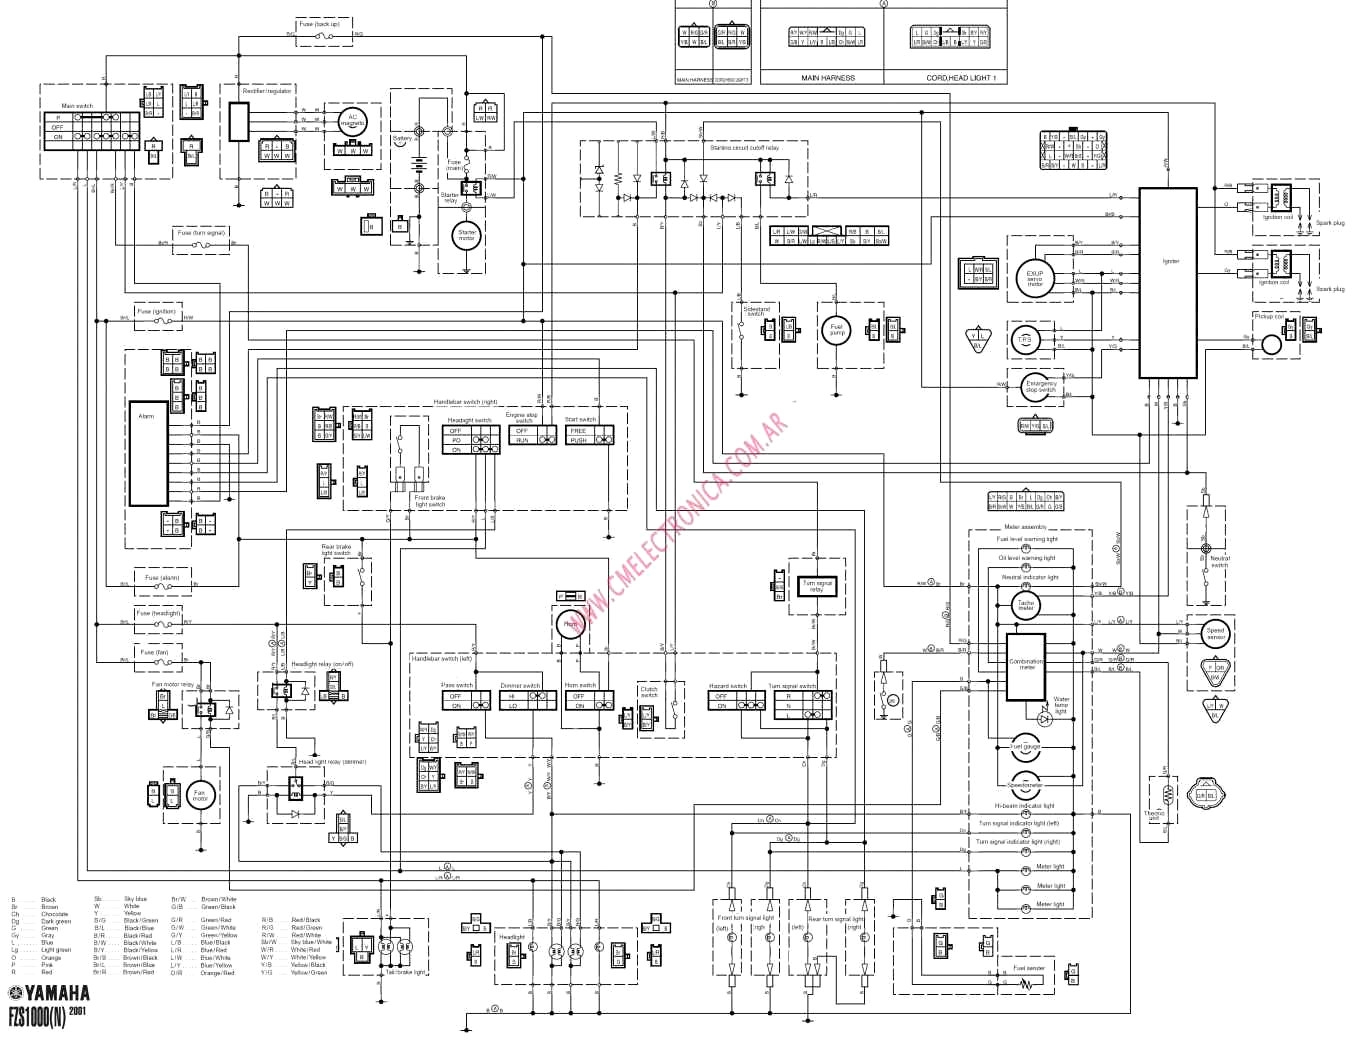 hight resolution of harley davidson wiring diagram harley davidson tail light wiring diagram lovely harley davidson 4g